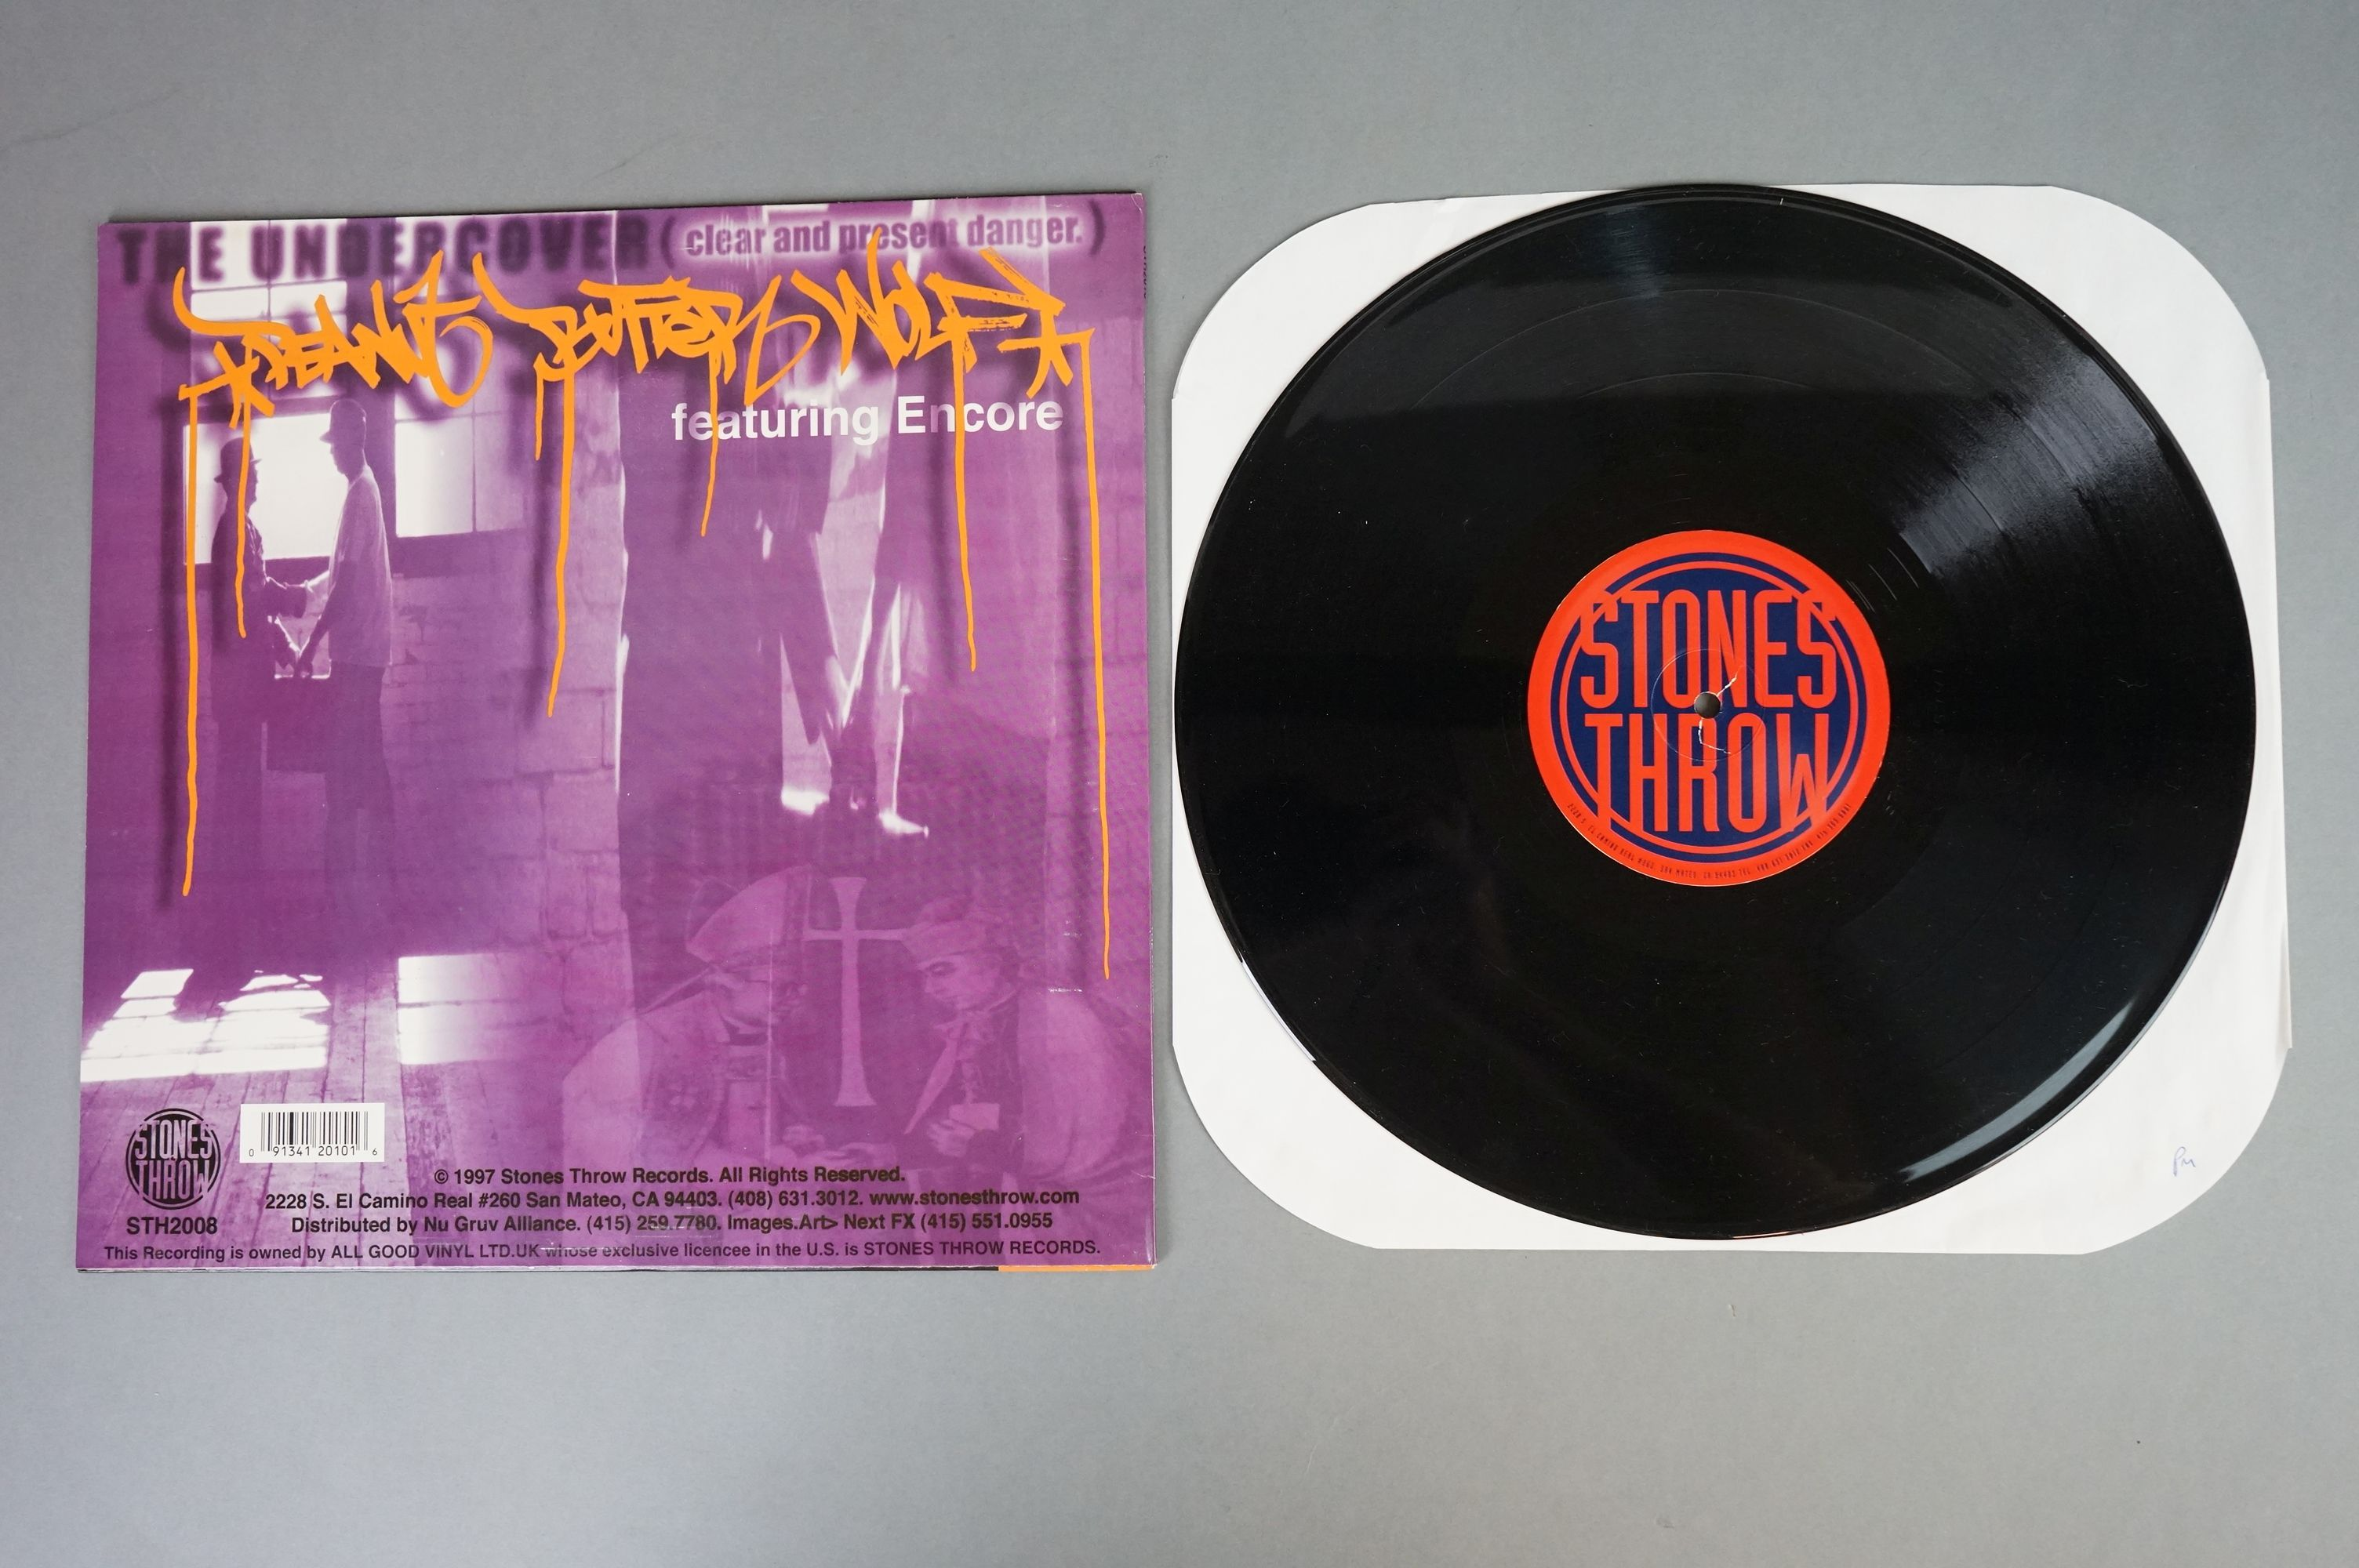 """Vinyl - Slurped Too! 2LP Compilation and 3 x Peanut Butter Wolf 12"""" singles to include Run The - Image 5 of 11"""